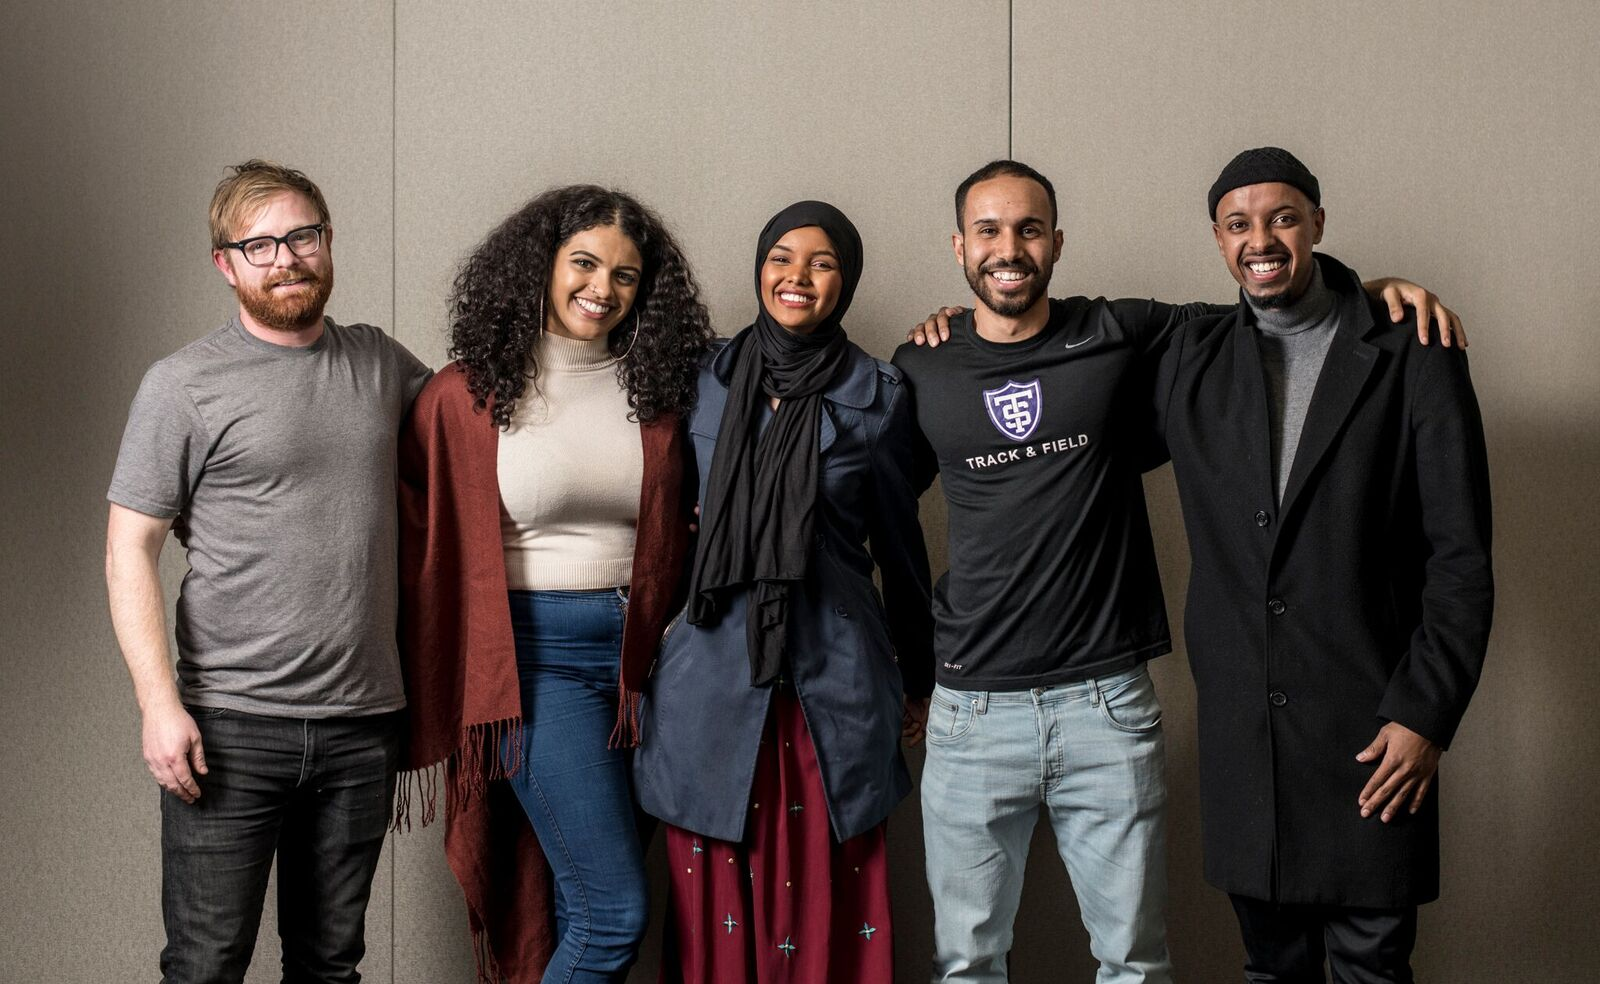 From left to right: John Haynes (Photographer), Felicia Philibert (Chief Operating Officer and Journalist), Halima Aden (Dream Refugee interviewee), Mohamed Malim (President and Founder), and Mubarak Hassan (Event Photographer)